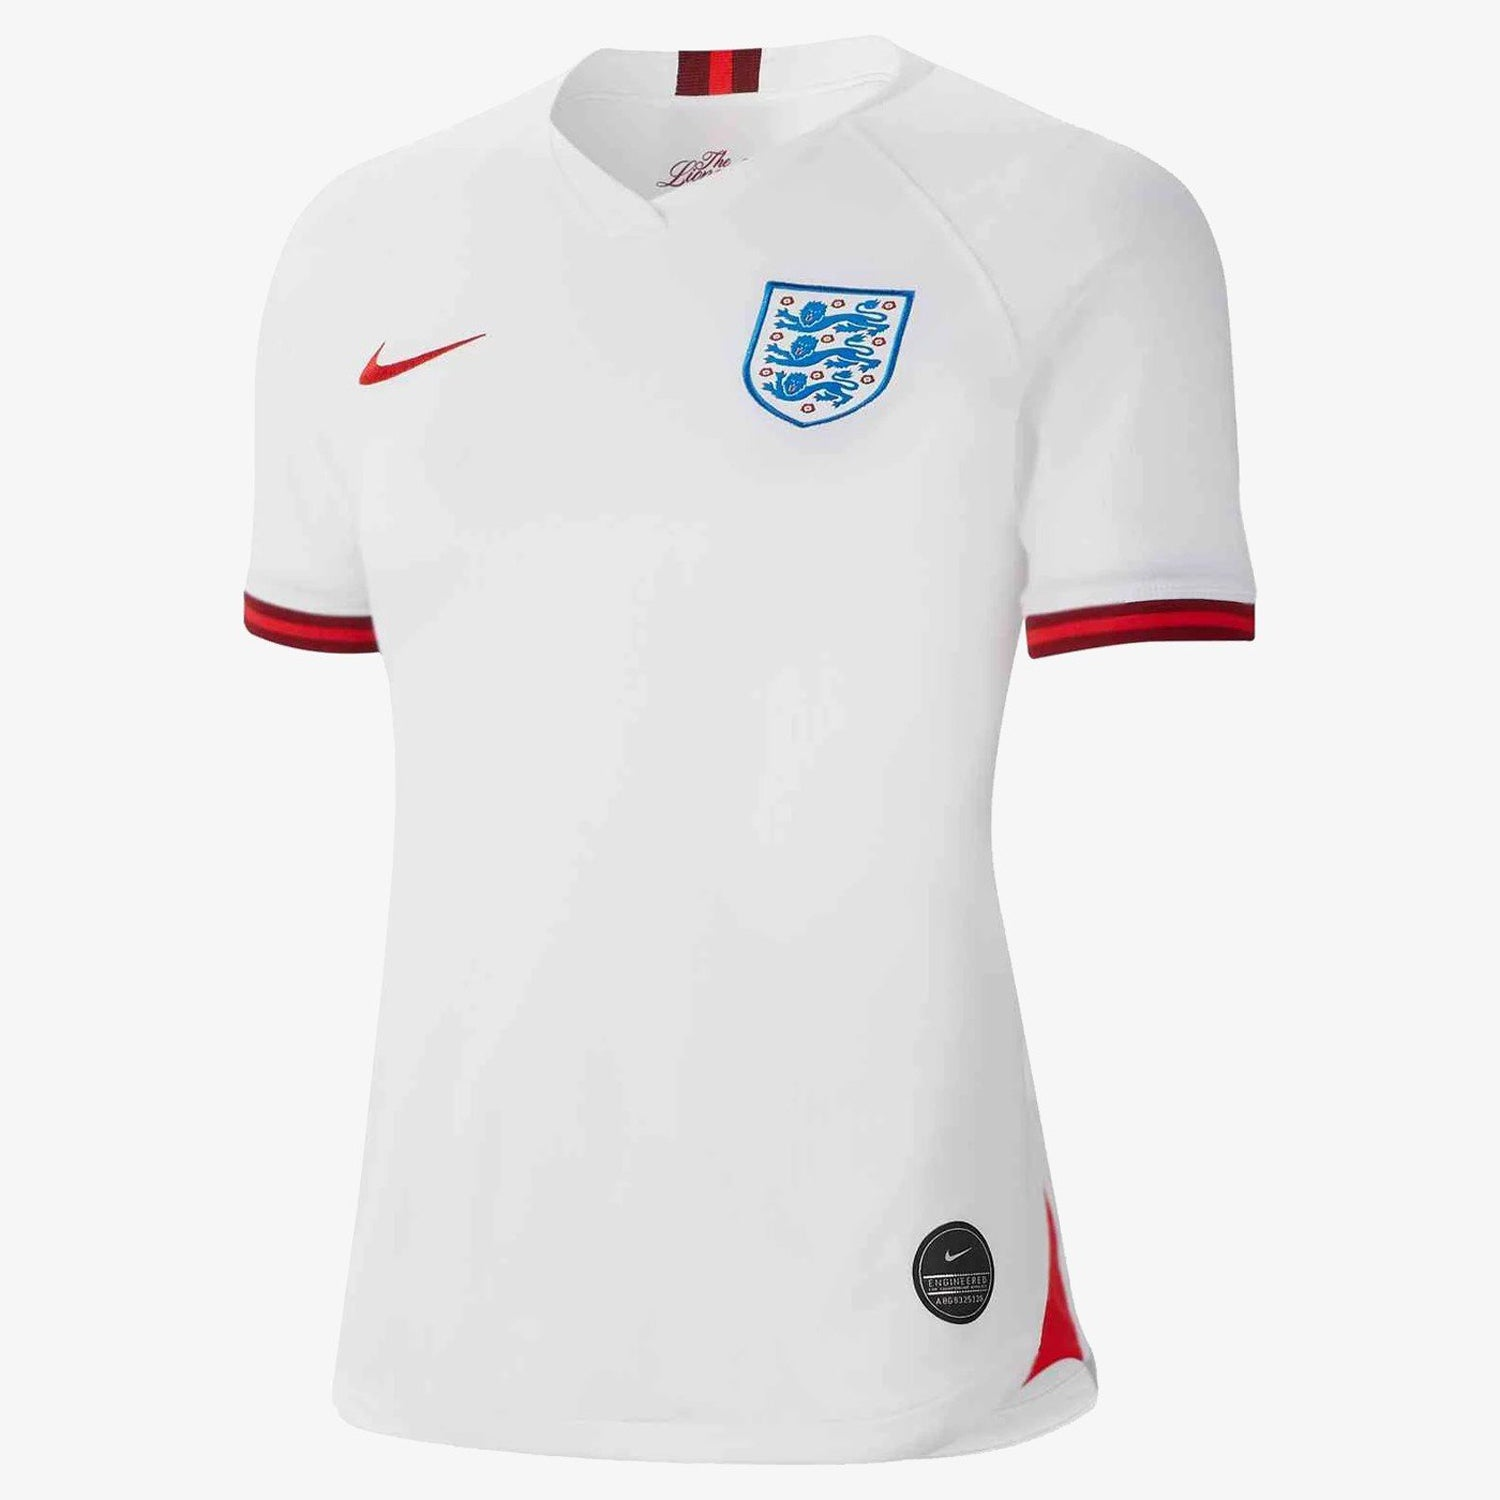 Women's England Stadium Home Jersey - White/Challenge Red